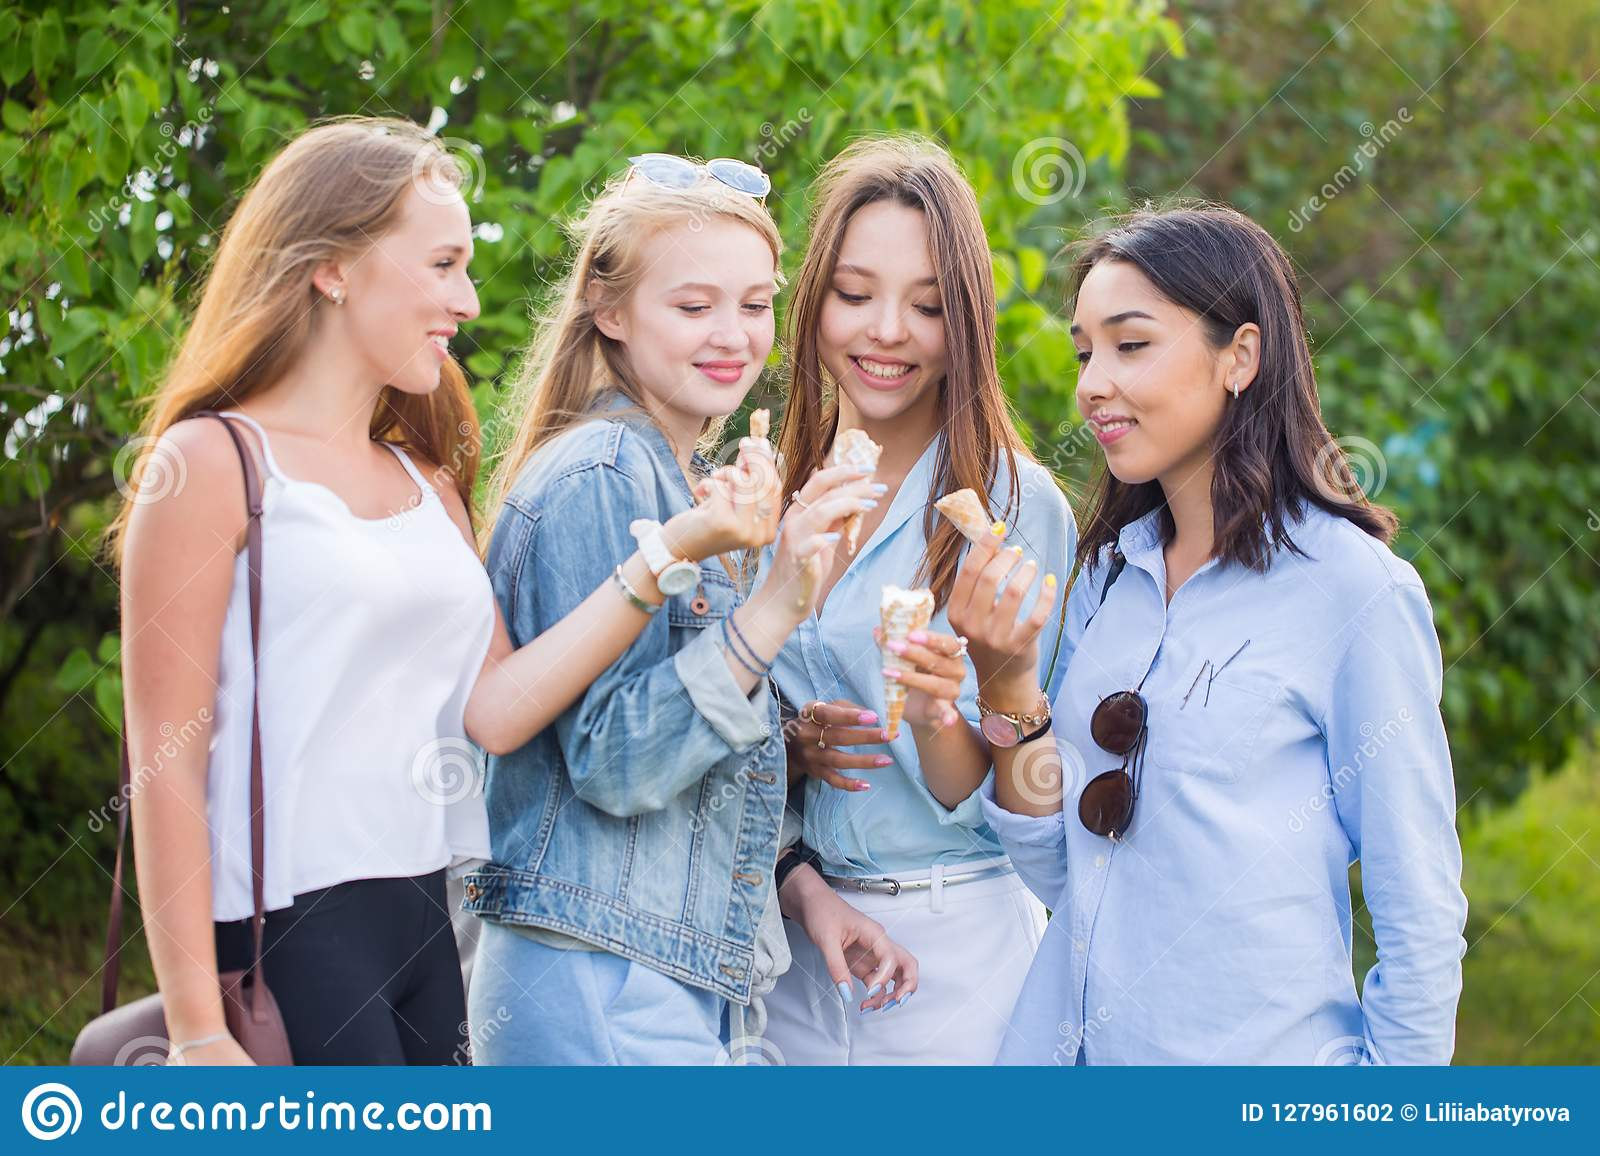 Four young joyful student girls laughing and eating ice cream in the Park, outdoors